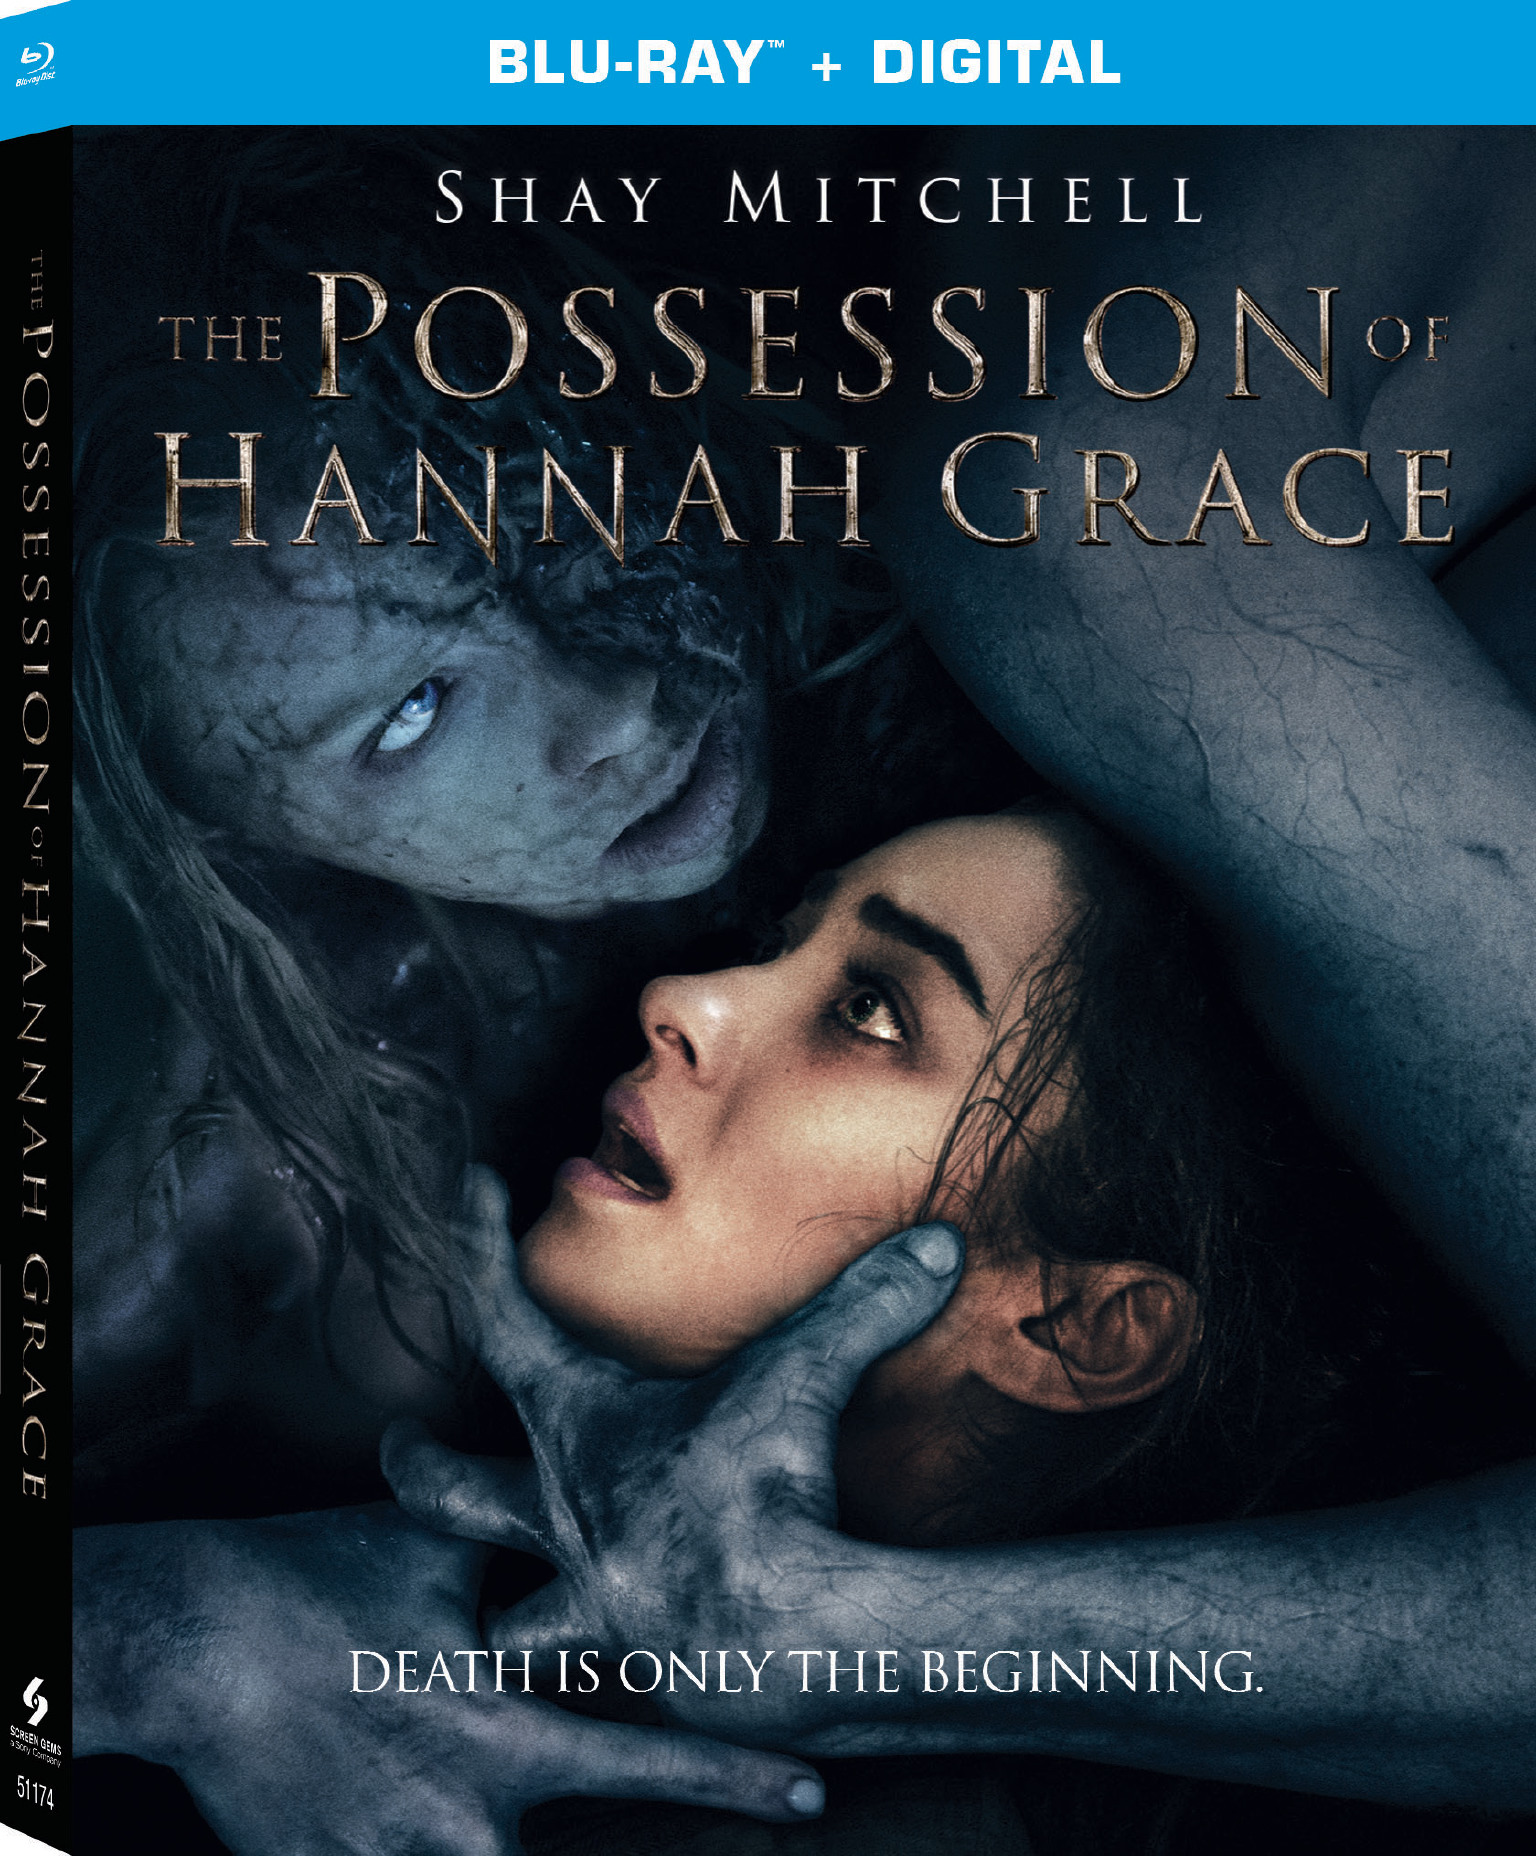 The Possession of Hannah Grace (2018) poster image